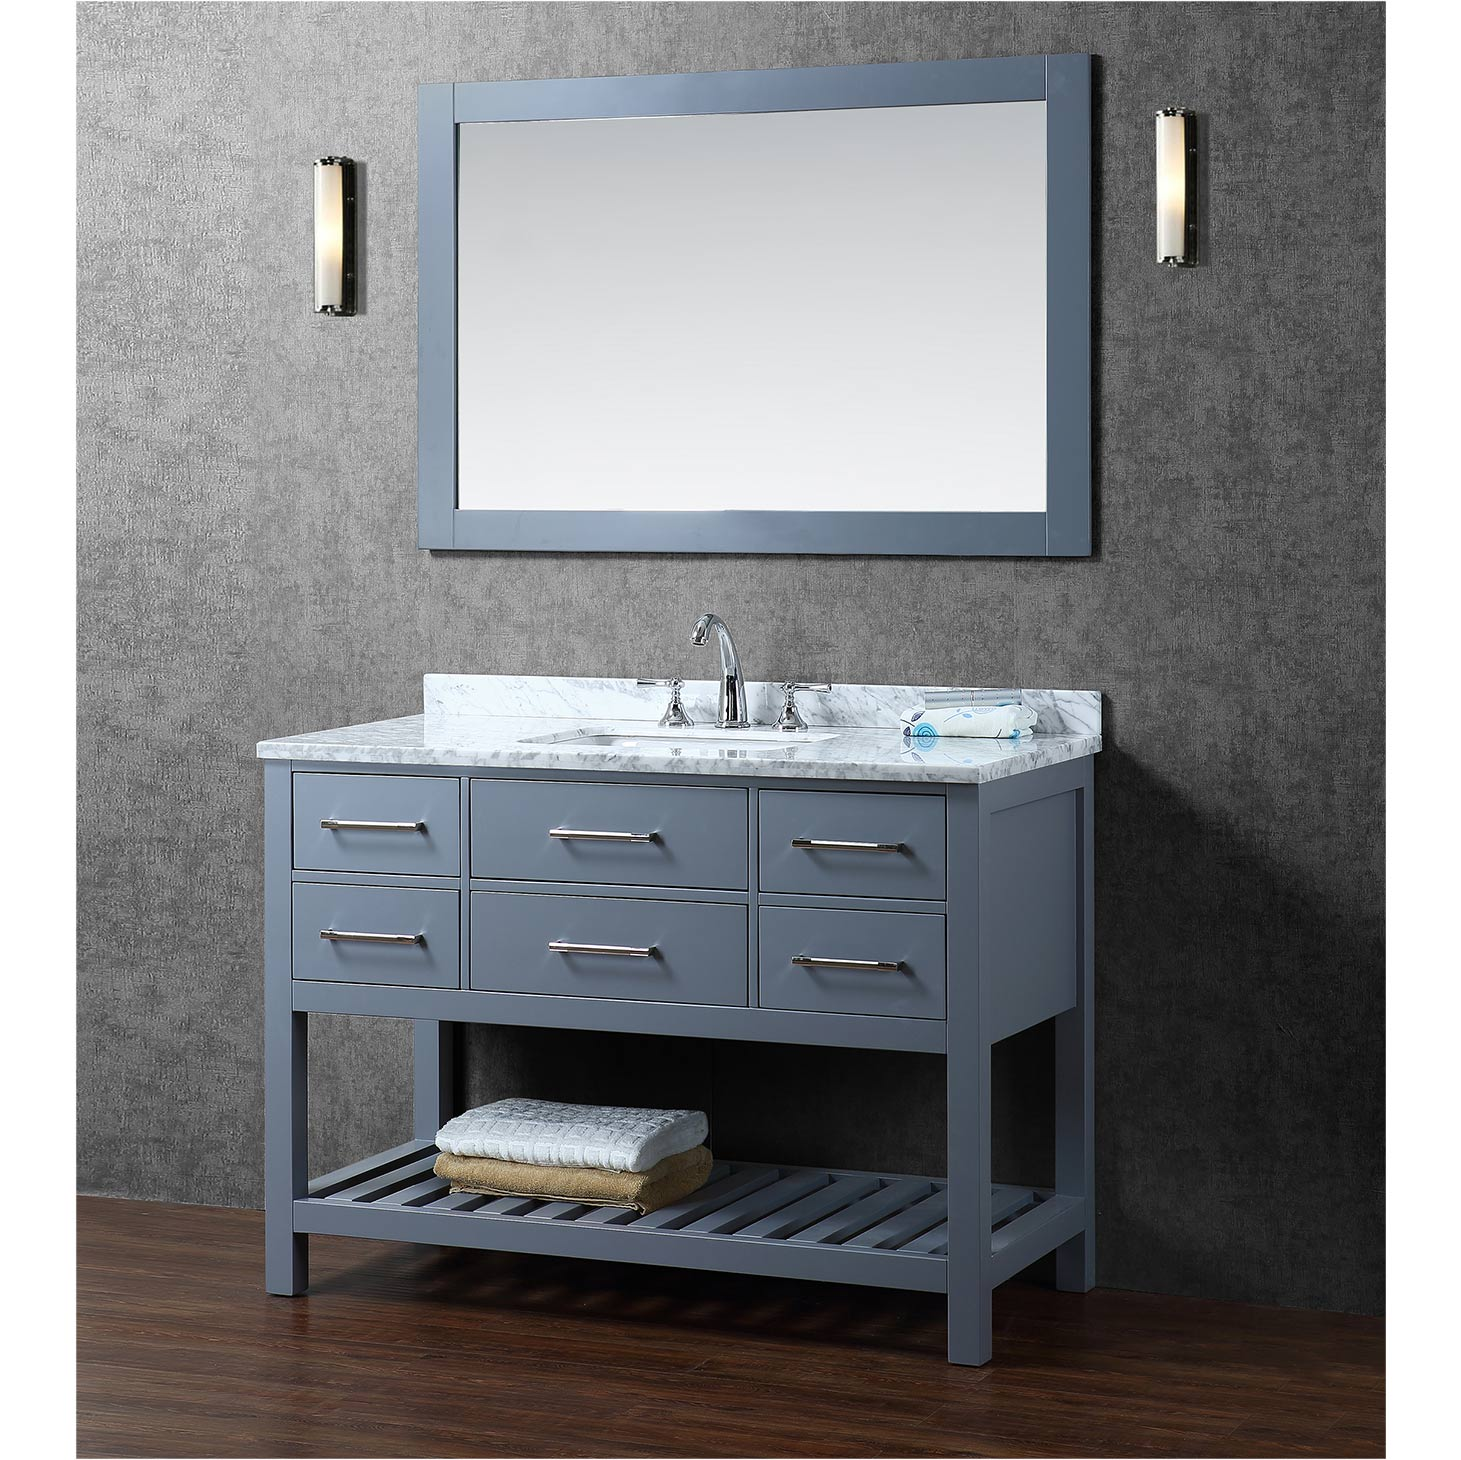 photo in vessel larger bathroom shown with sink email and vanity ca a p inch modernbathrooms espresso wood friend htm white top mount